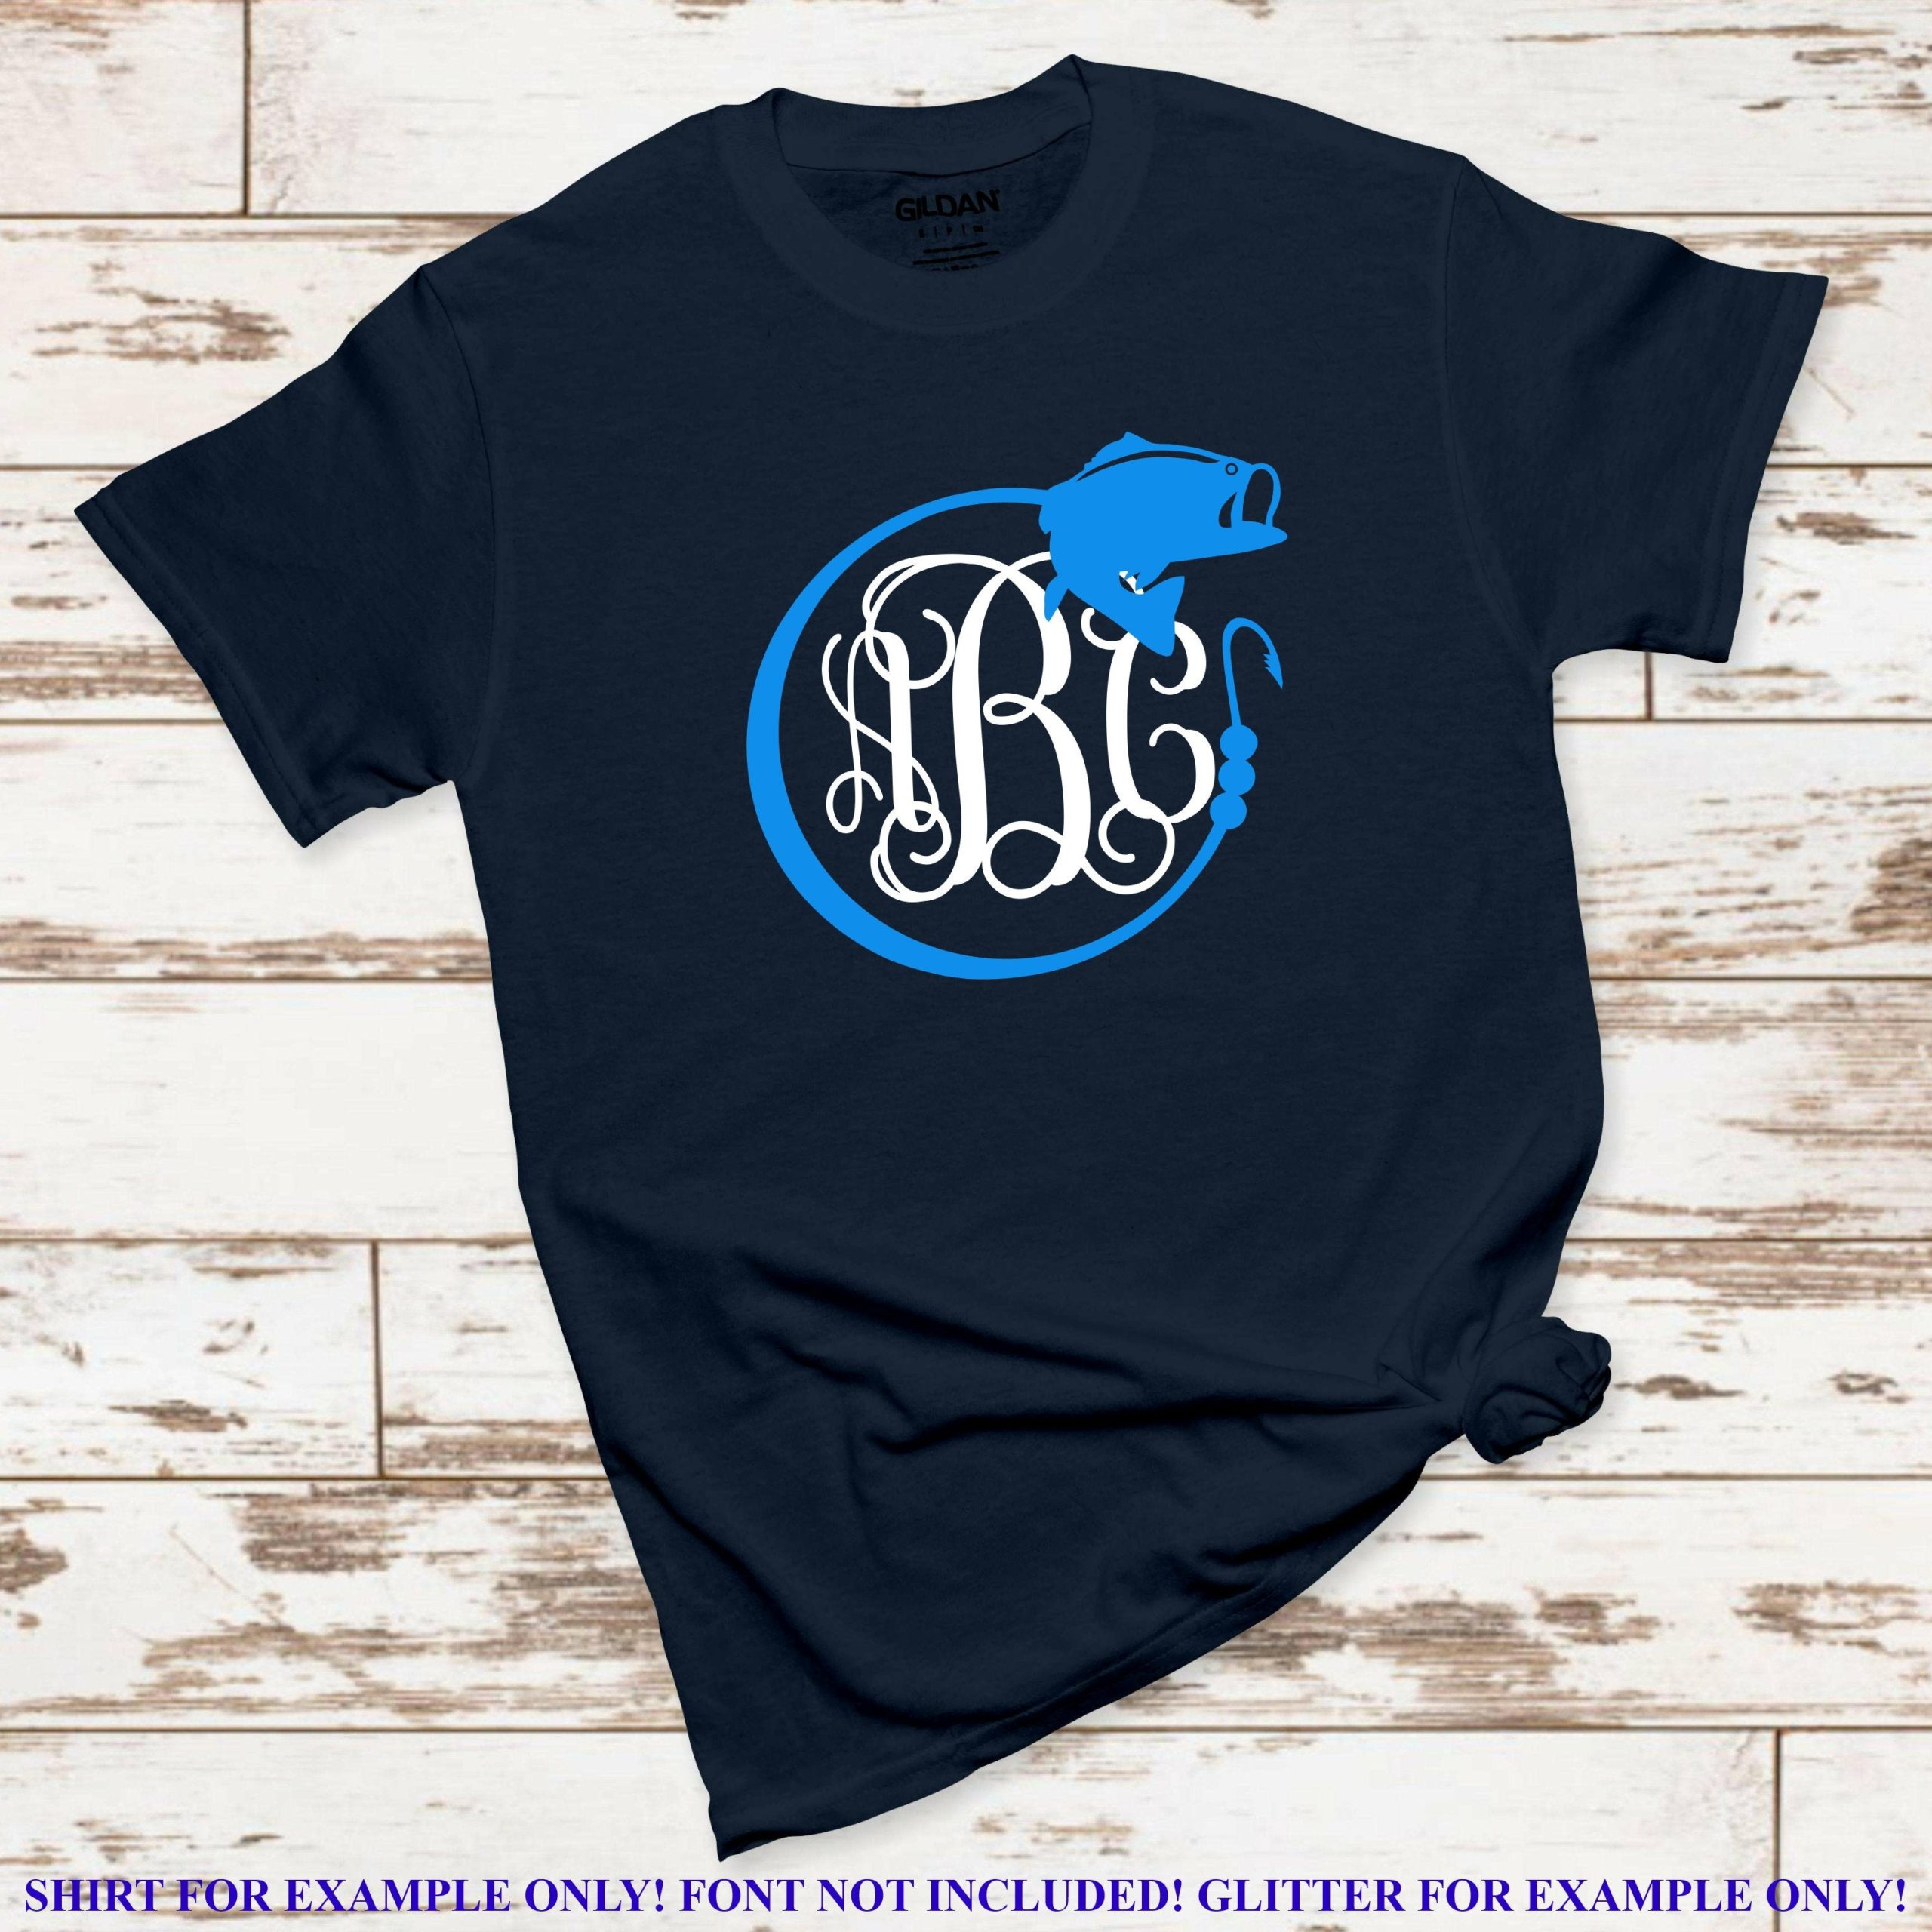 Bass-monogram-svg-bass-svg-monogram-svg-fishing-svg-vacation-svg-tshirt-travel-svg-adventure-svg-for-cricutsilhouette-cut-file-5ef78bfe